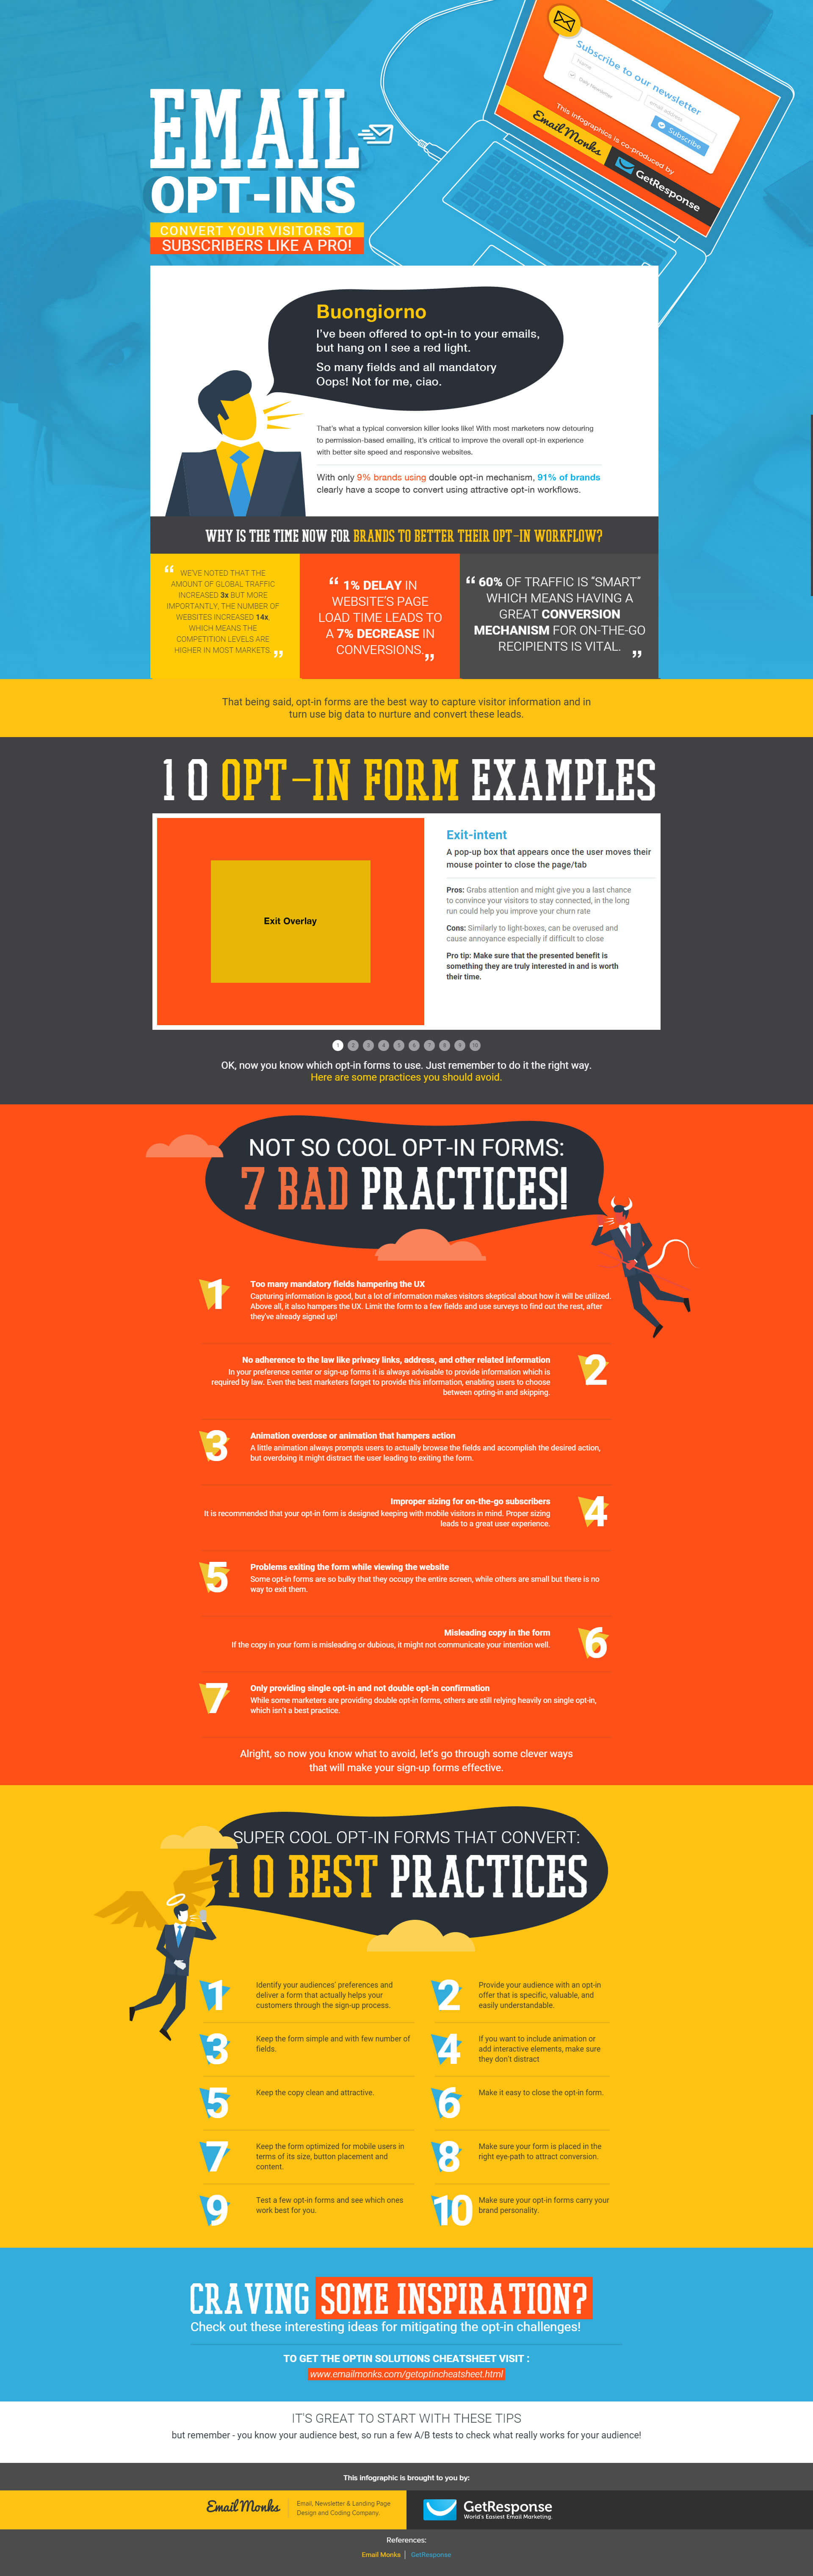 Email Opt-ins Infographic - Examples, Best Practices, Tips & more!